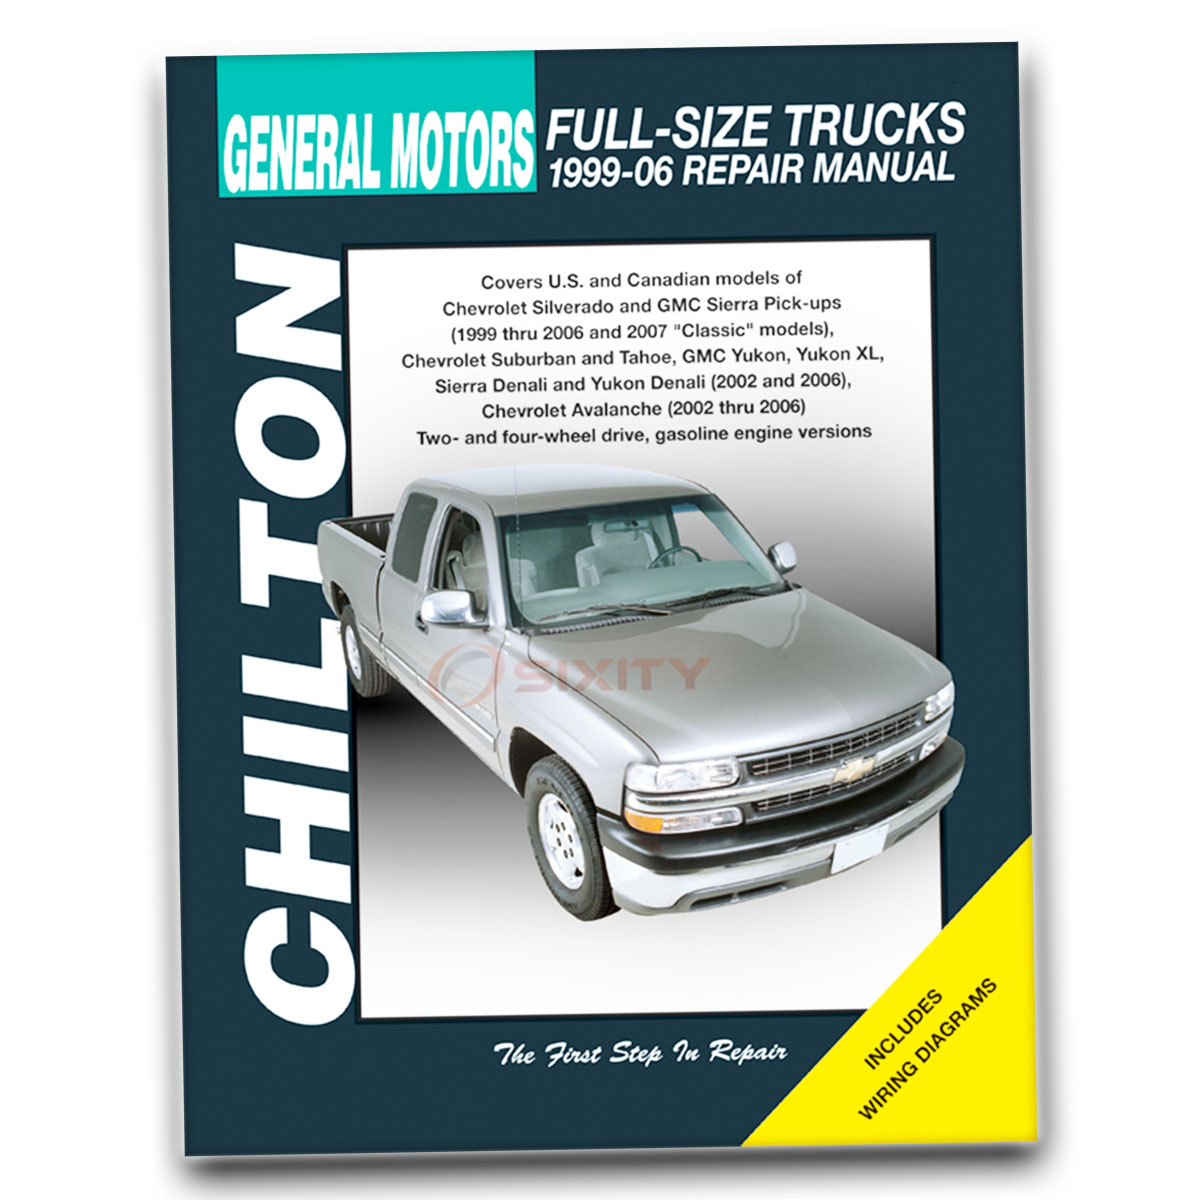 Chilton Repair Manual for GMC Yukon XL 1500 SL SLE SLT Shop Service Garage  qs